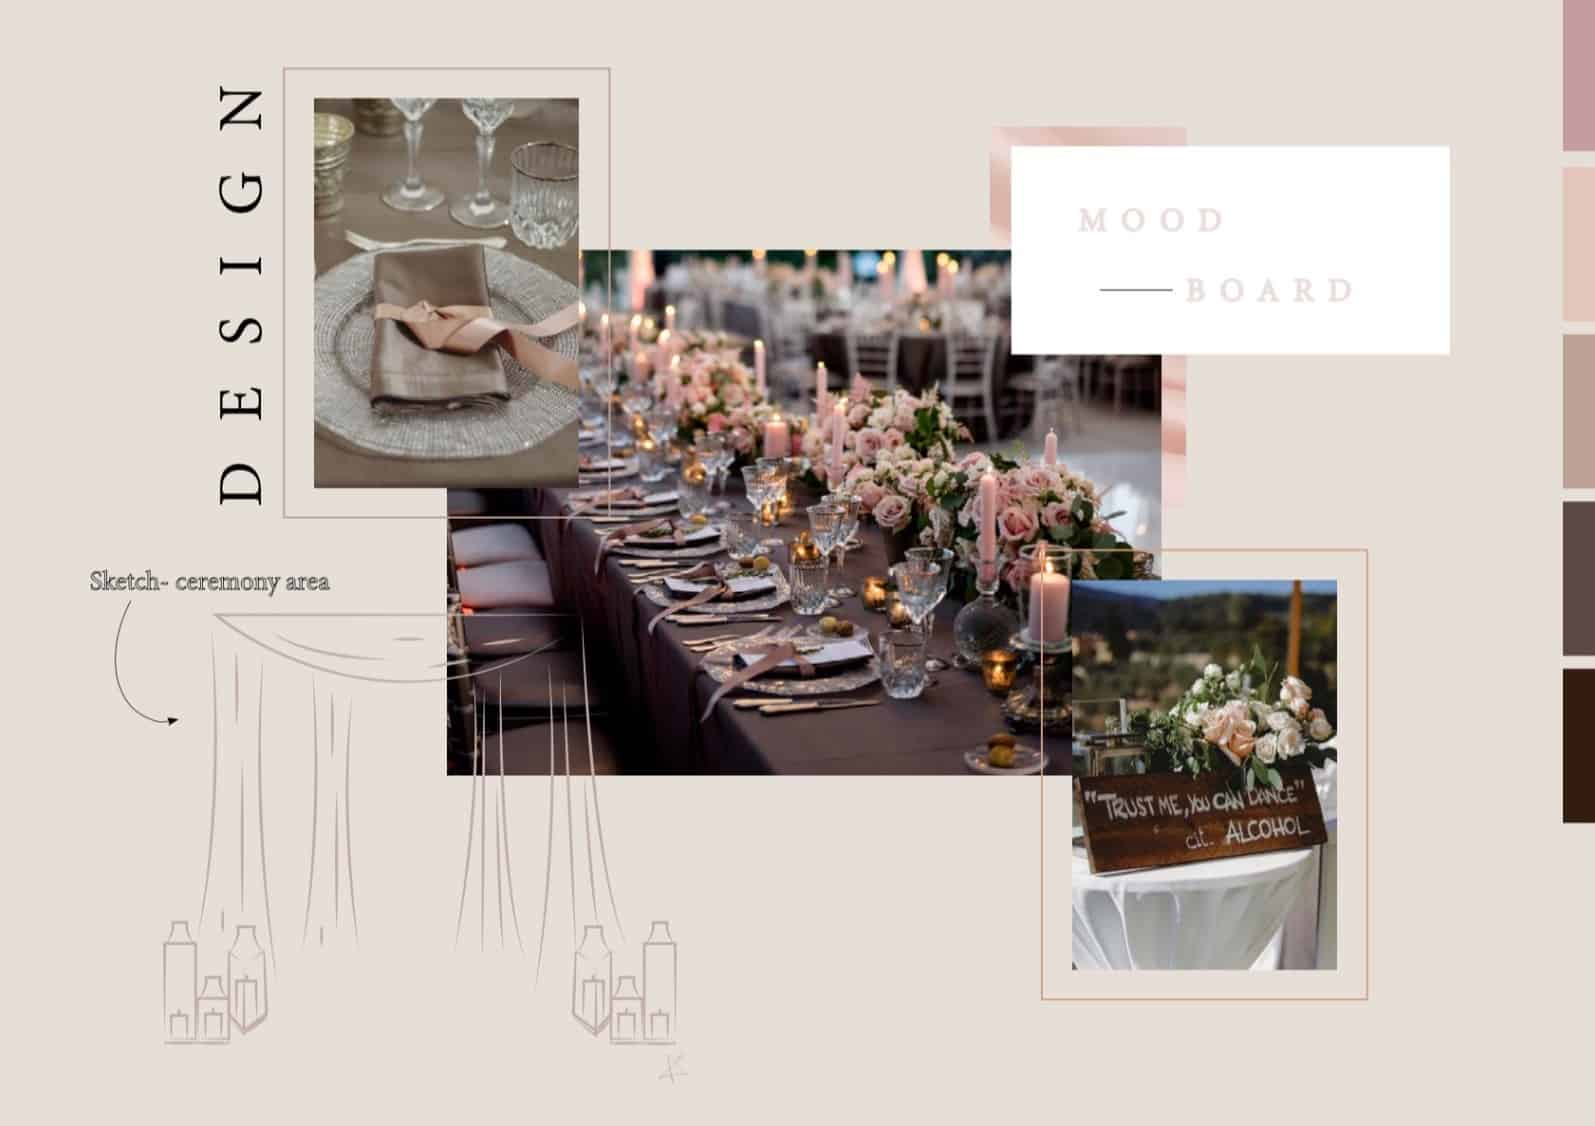 Moodboard of a wedding composed by photos of the table set up, with pink roses, candles, silver dishes